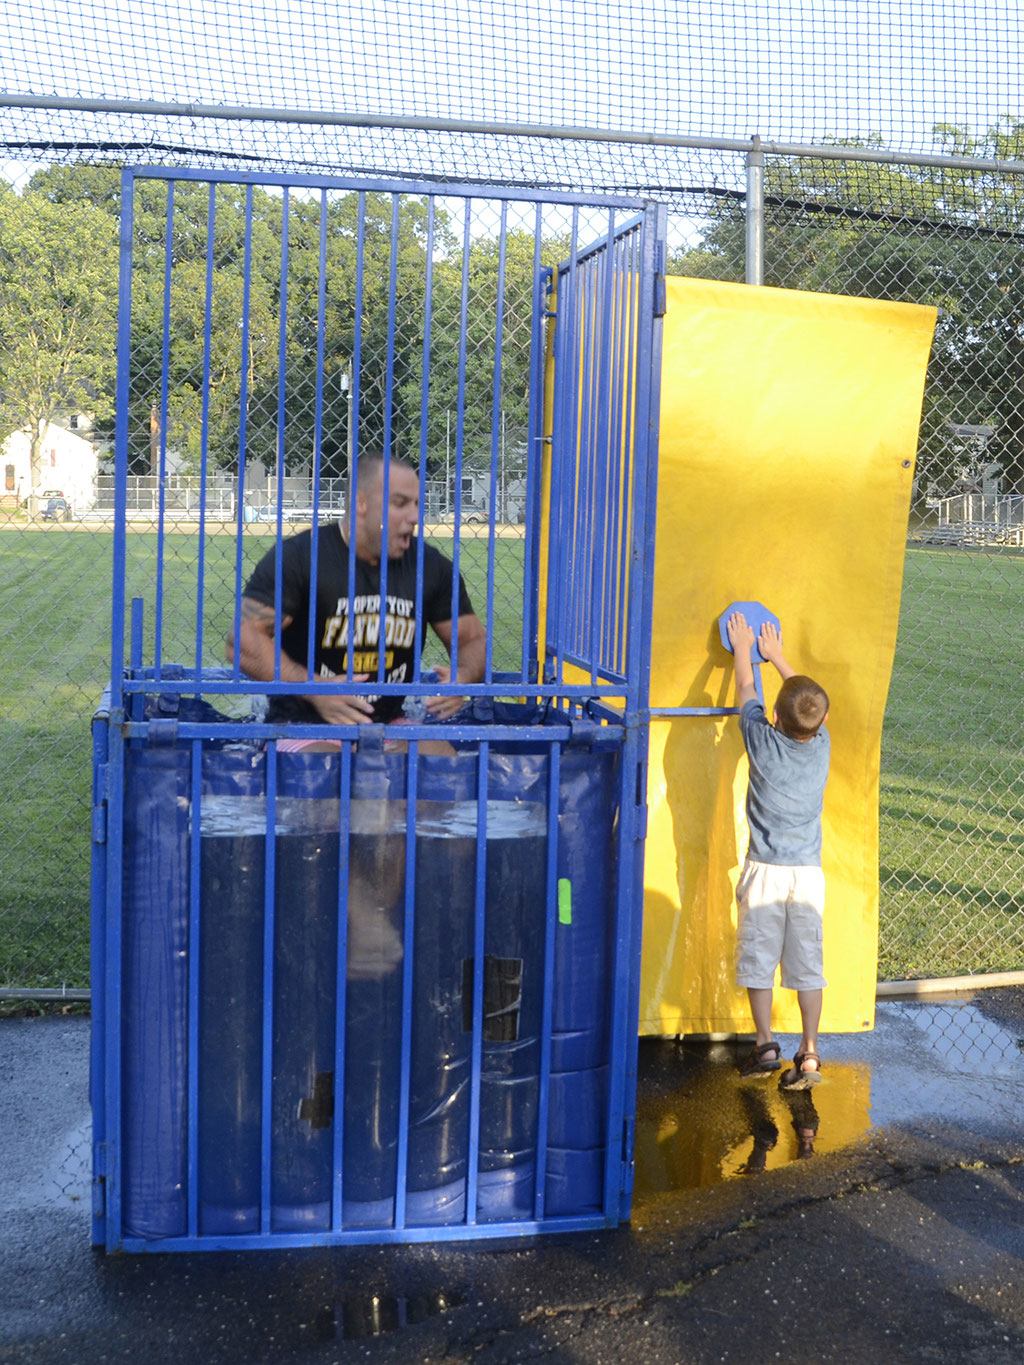 FF/Officer Piccola shown in the process of being dunked